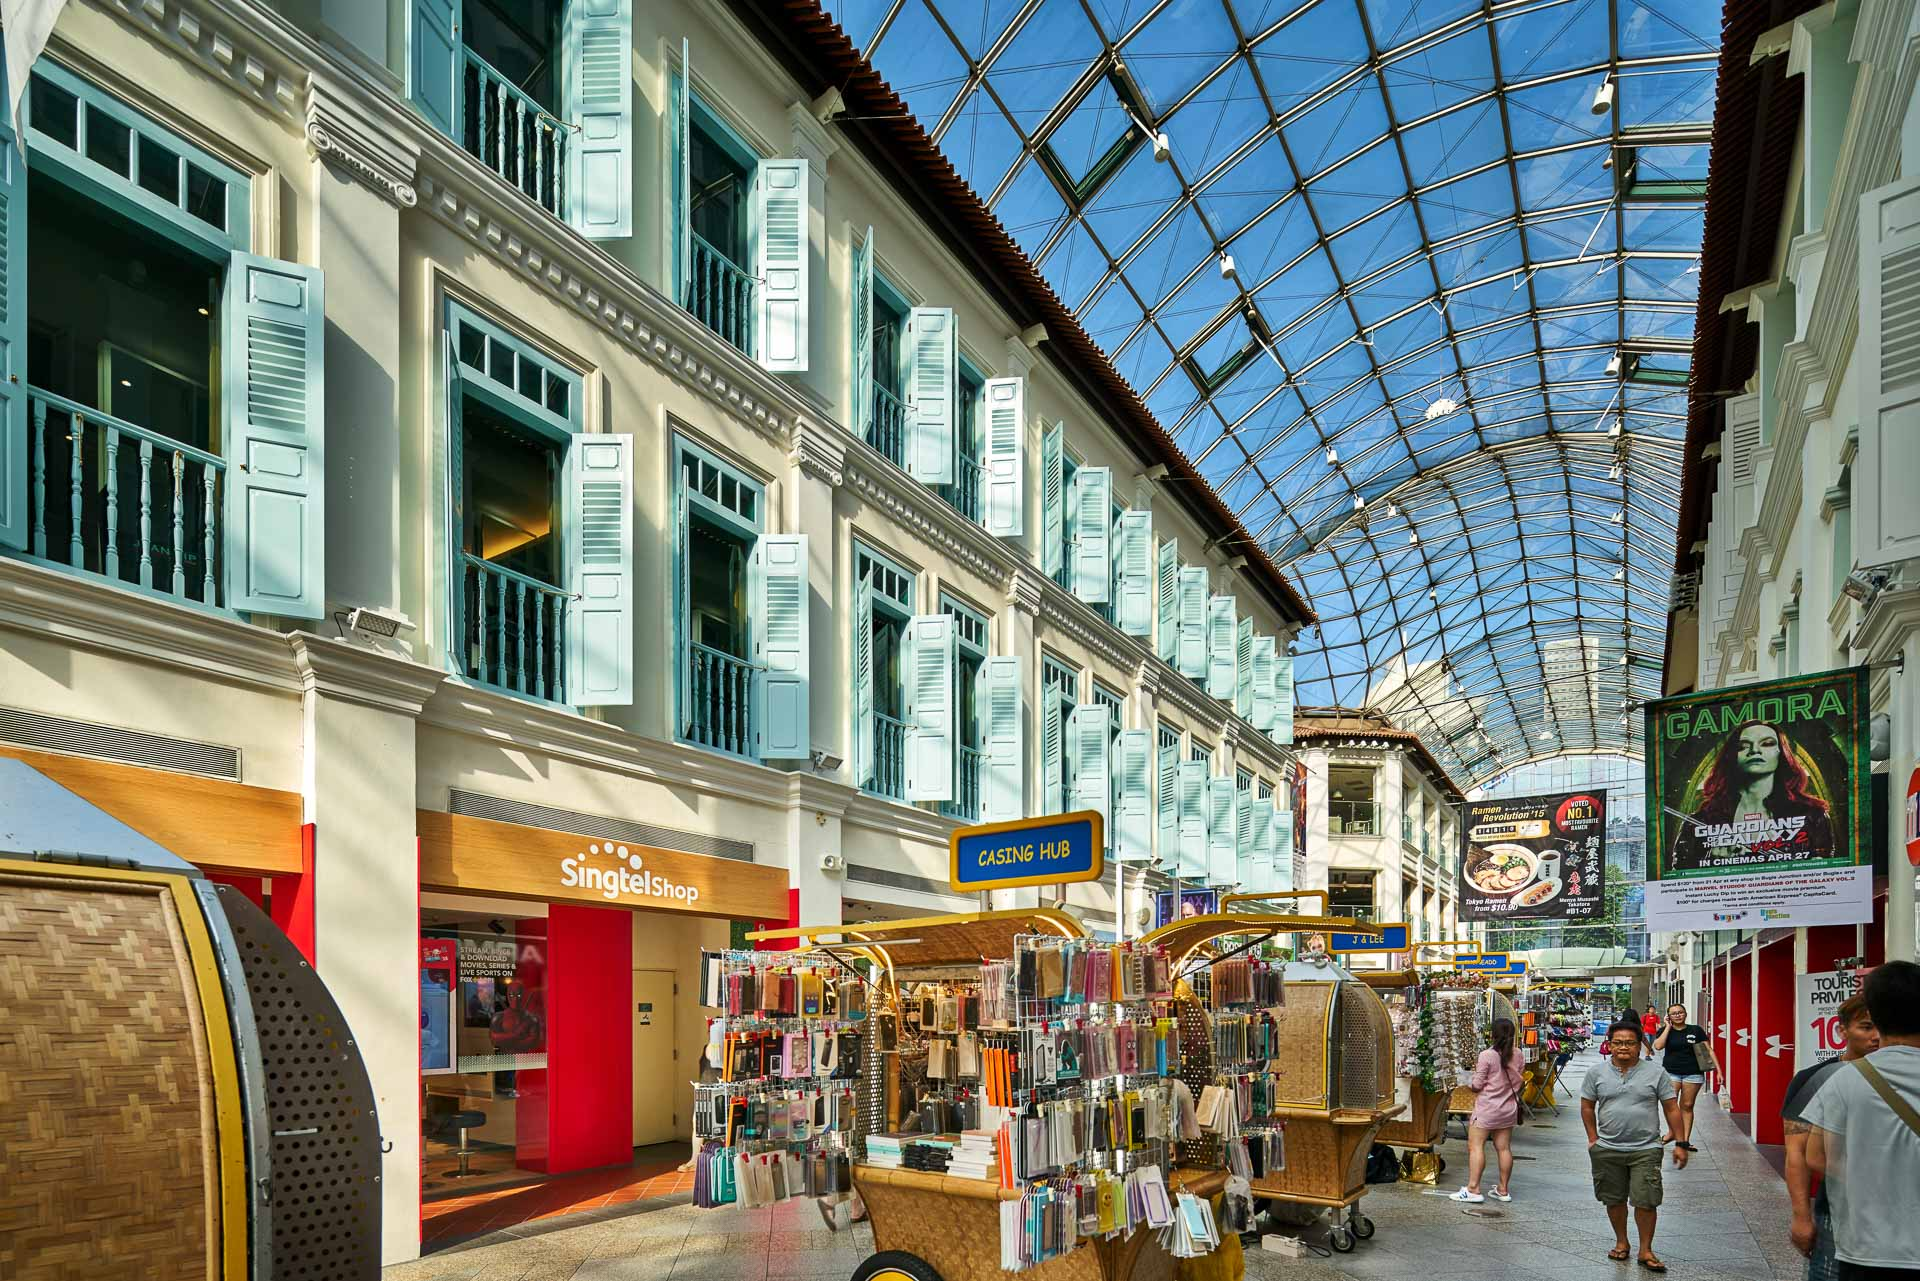 architectural photography of bugis junction mall in singapore with colourful shutters and clear sky through glass gallery ceiling